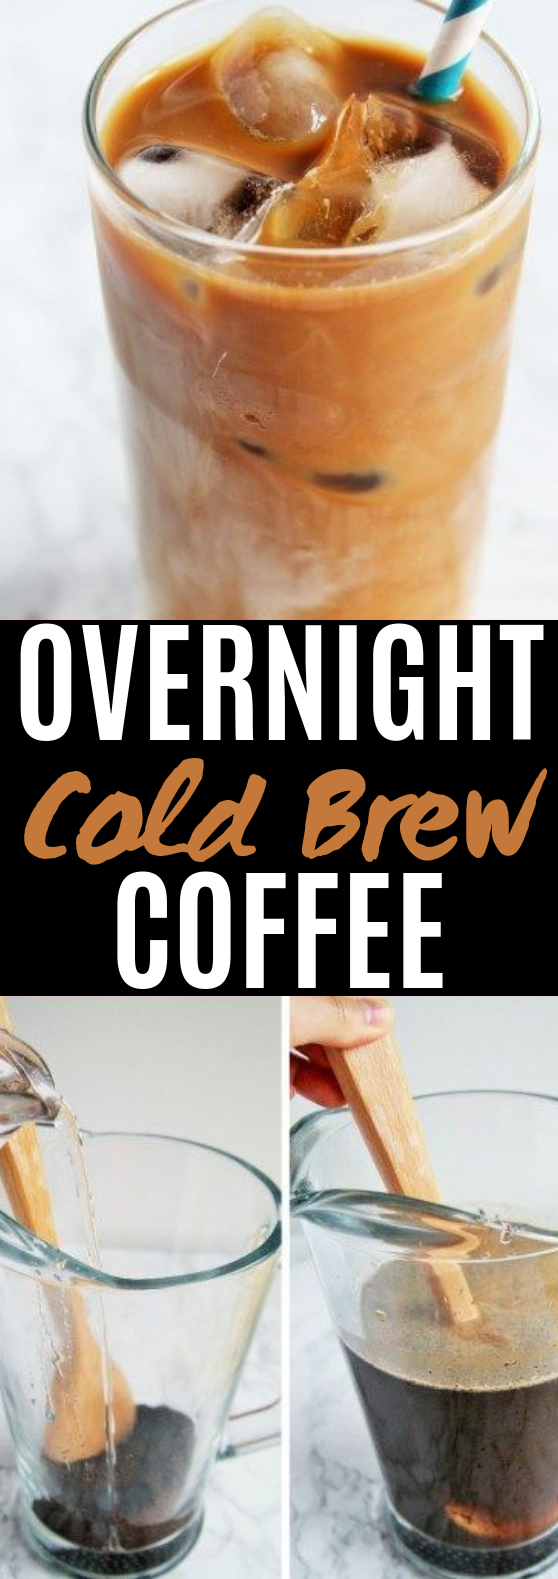 EASIEST OVERNIGHT COLD BREW COFFEE #drinks #coffee